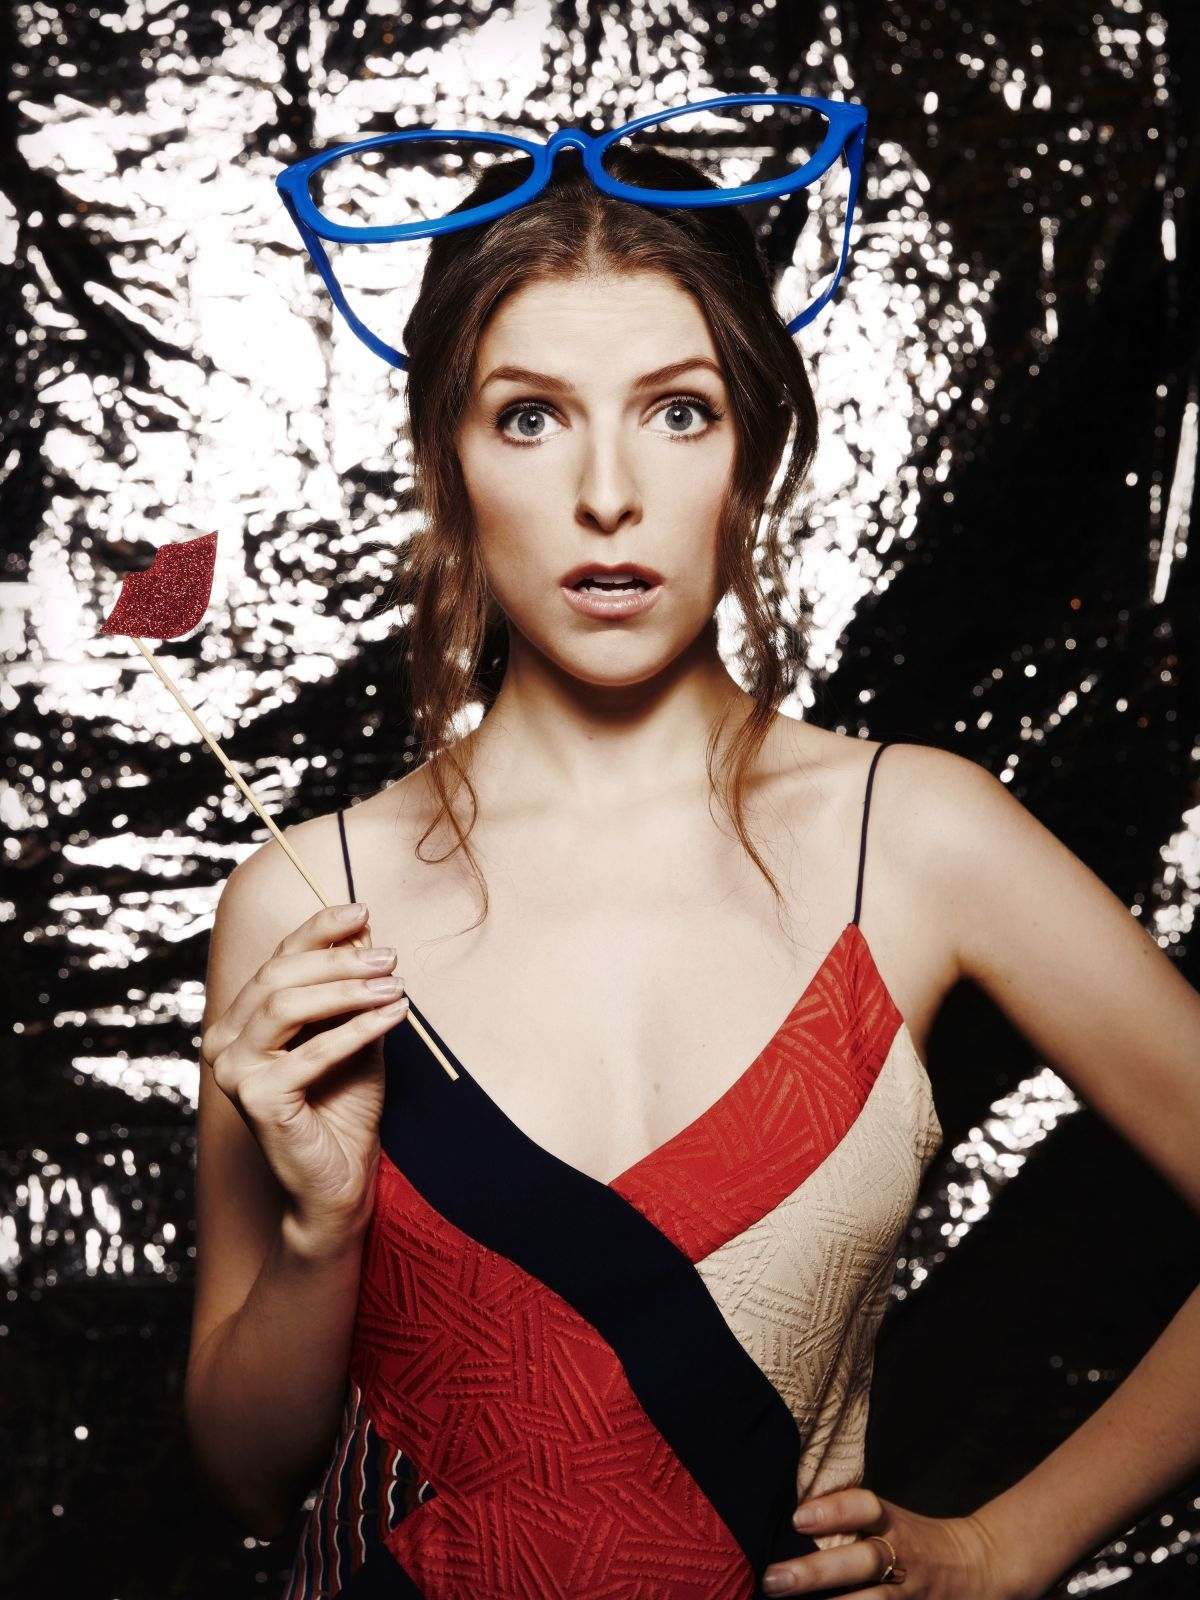 ANNA KENDRICK in Ocean Drive Magazine, August/September 2016 Issue